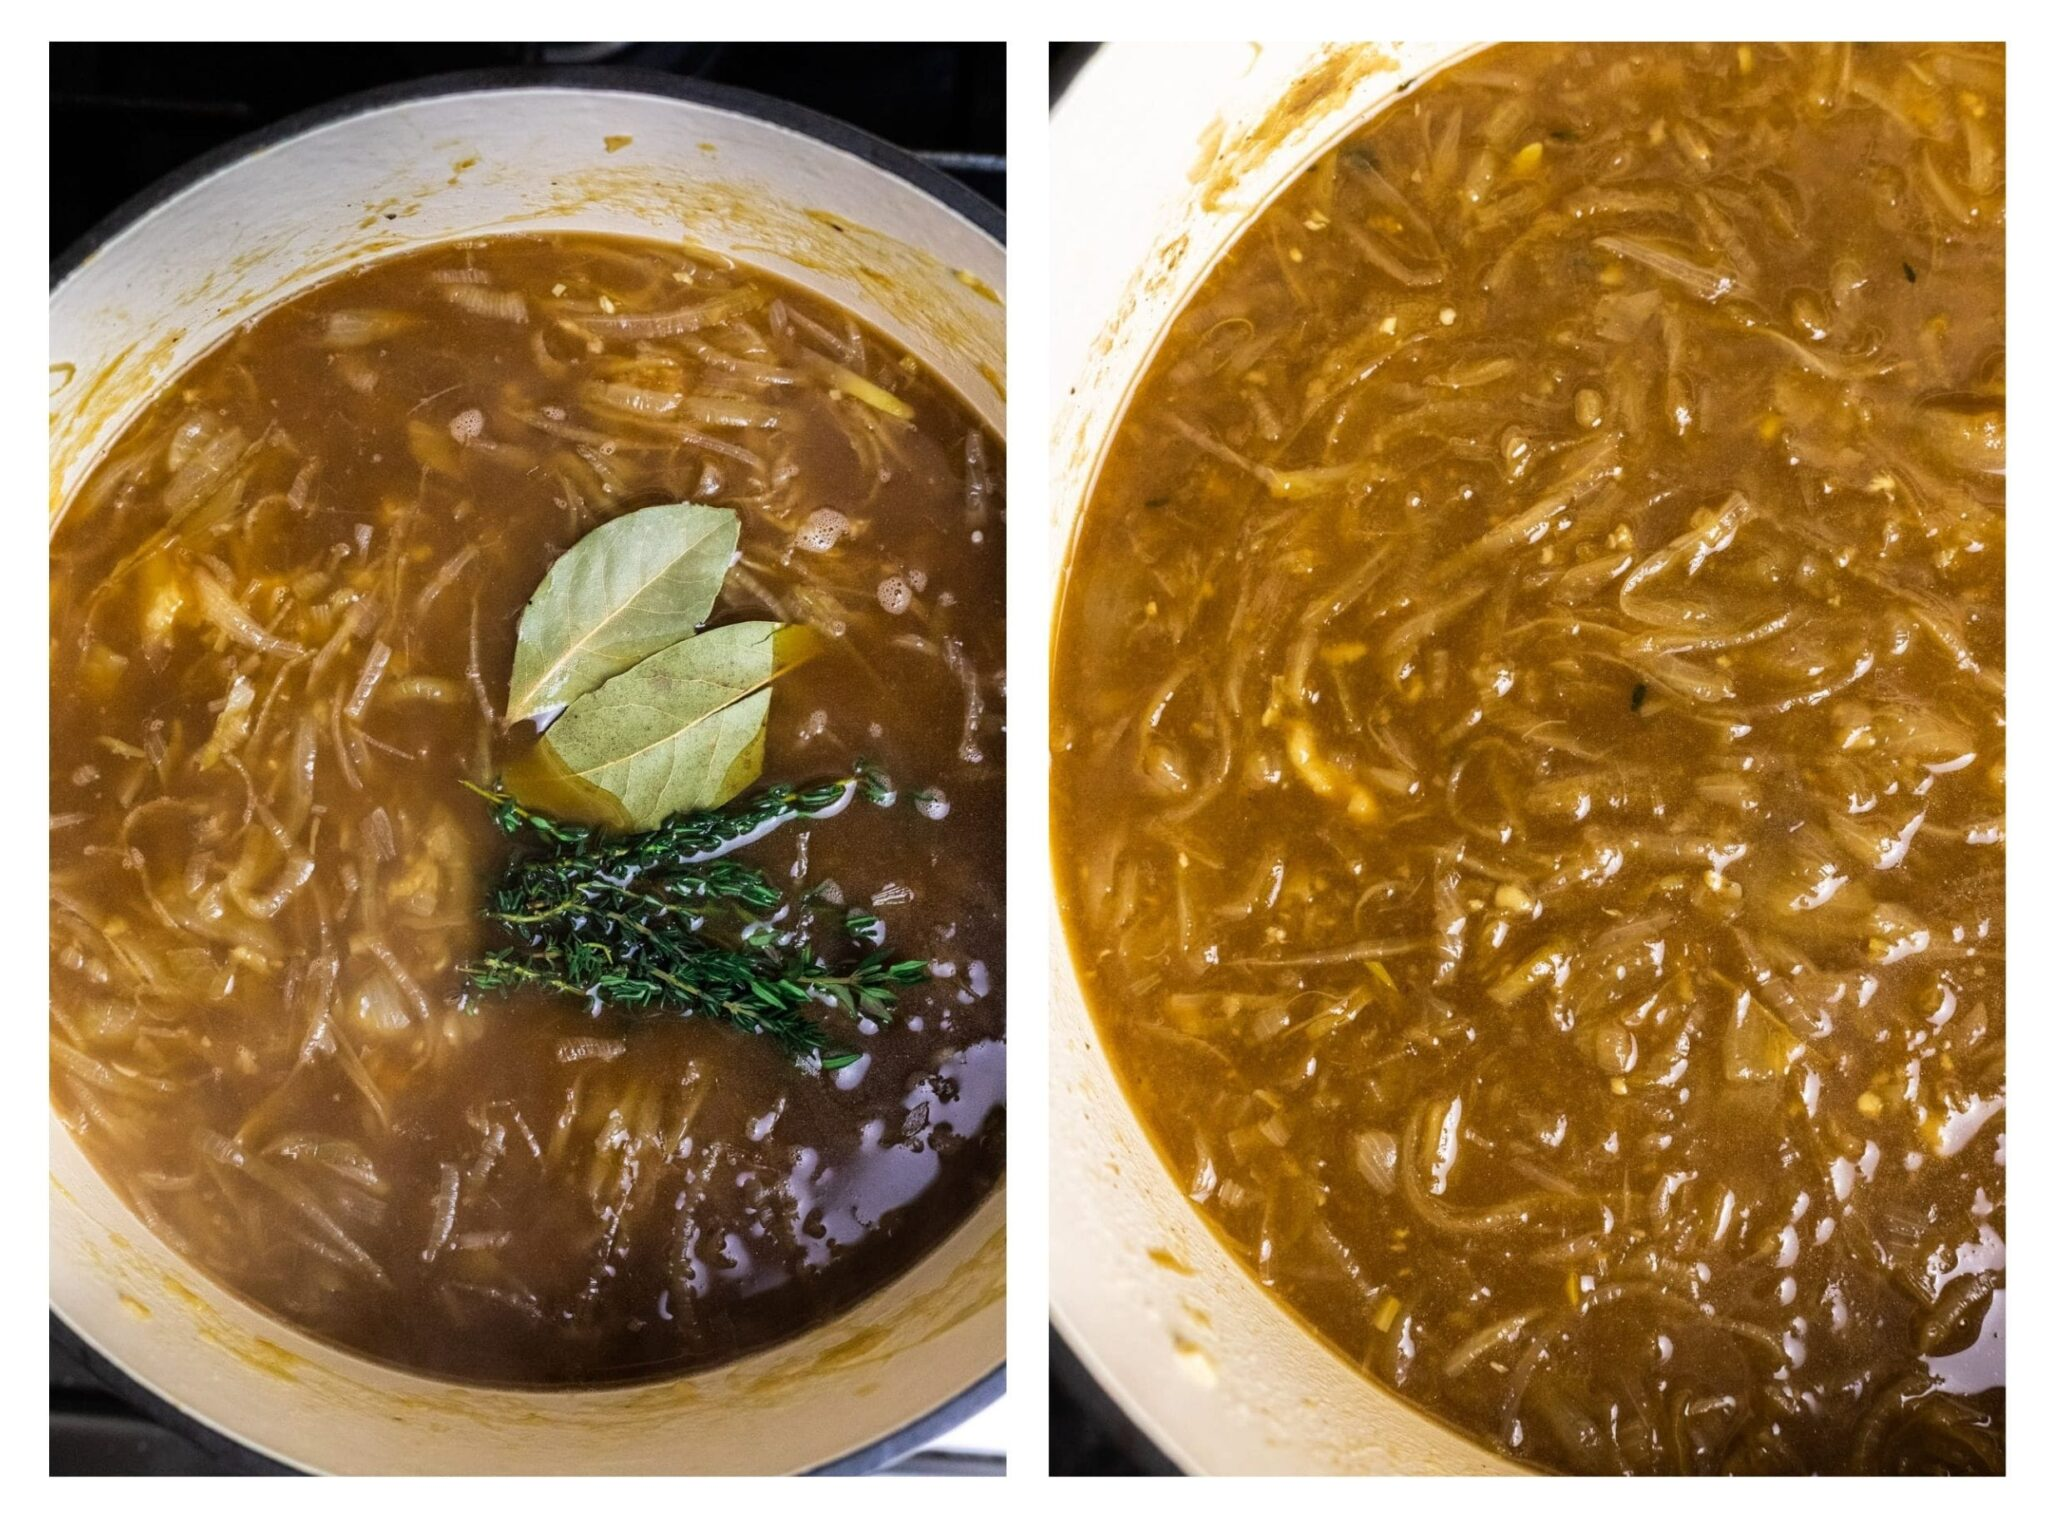 French onion soup before and after simmering.